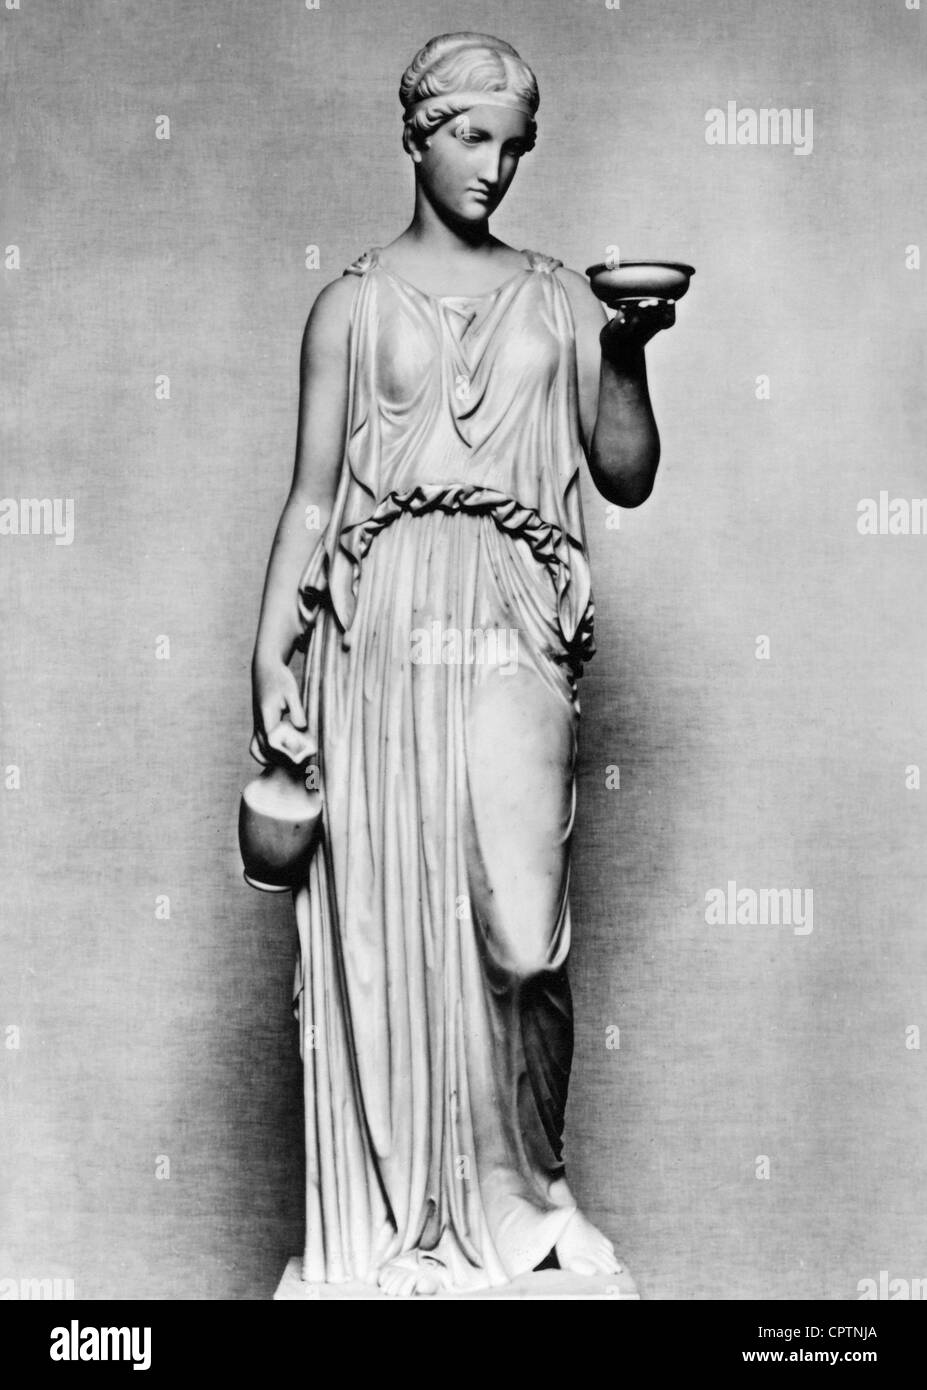 Hebe (Latin: Iuventas), Greek goddess of youth, sculpture by Bertel Thorvaldsen (1768 - 1844), 1816, Copenhagen, - Stock Image